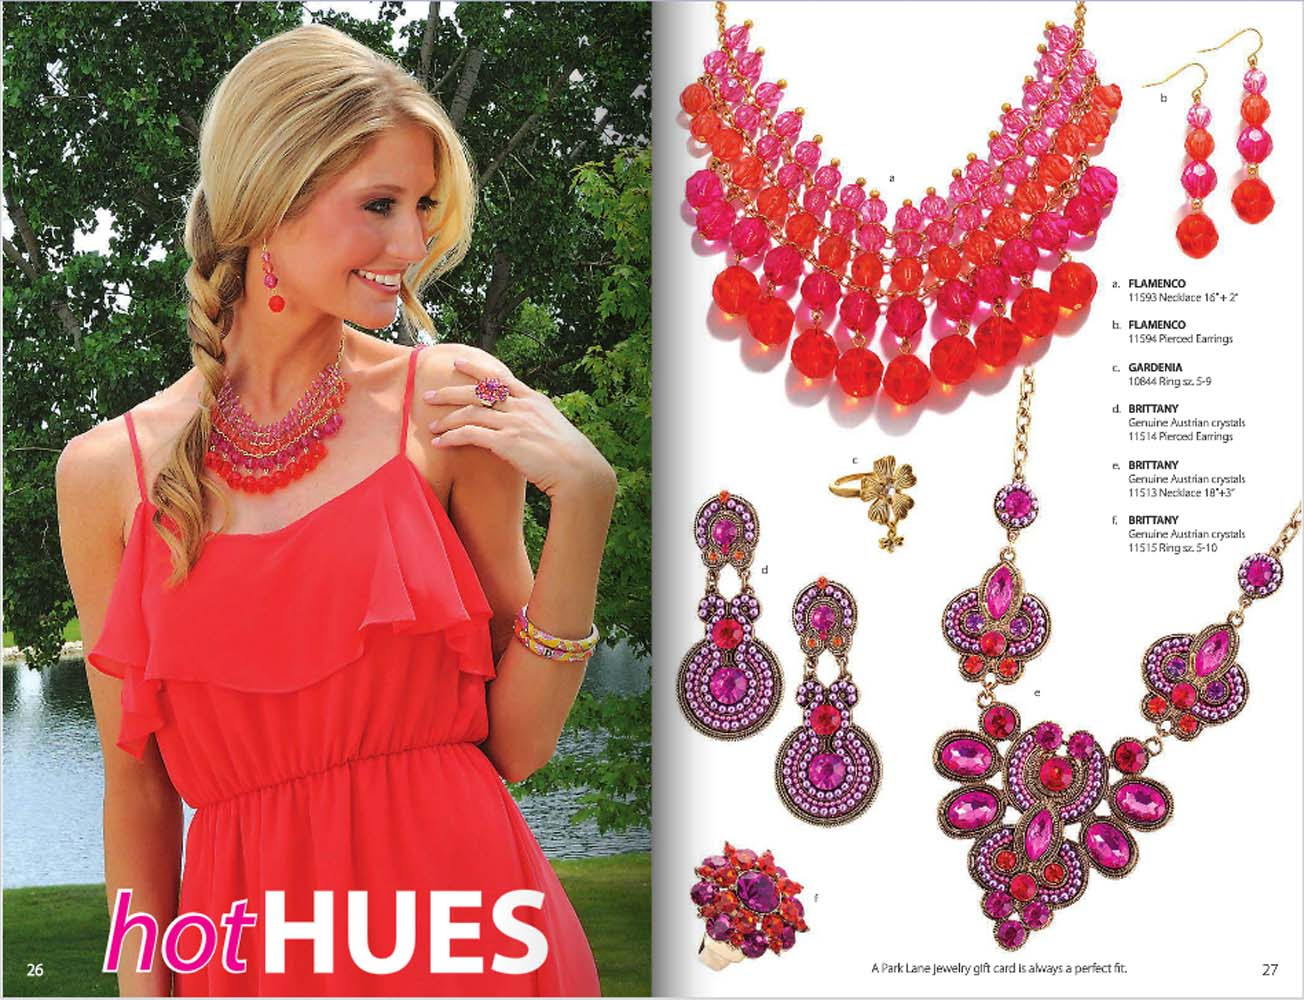 Catalog pages of Park Lane jewelry catalog with blonde model on left wearing pink dress and pink and red beaded jewelry set and product shots of jewelry on right with prices Jewelry Photography